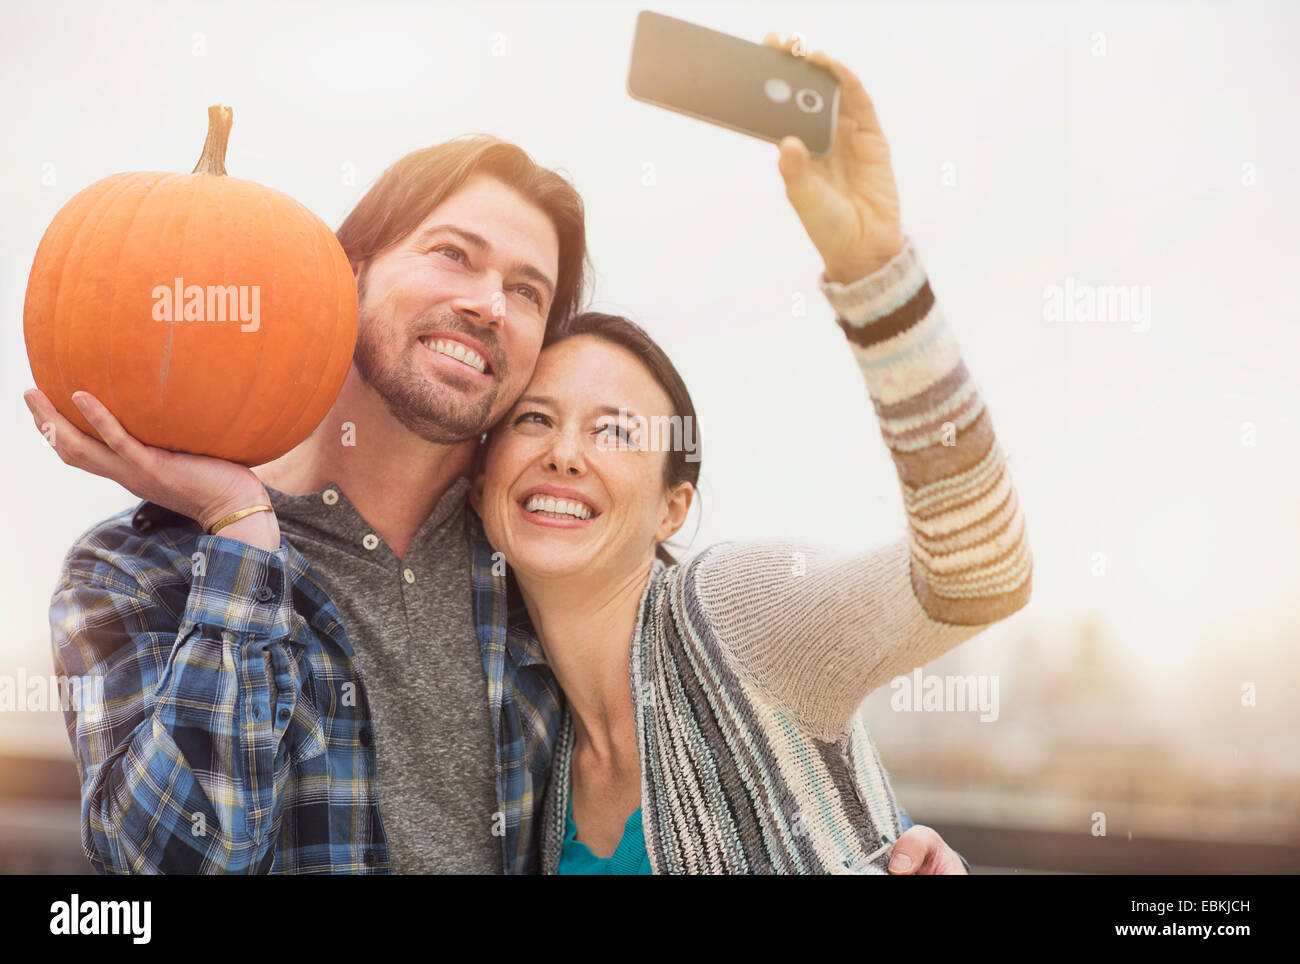 Couple taking selfie with mobile phone, man holding pumpkin Stock Photo